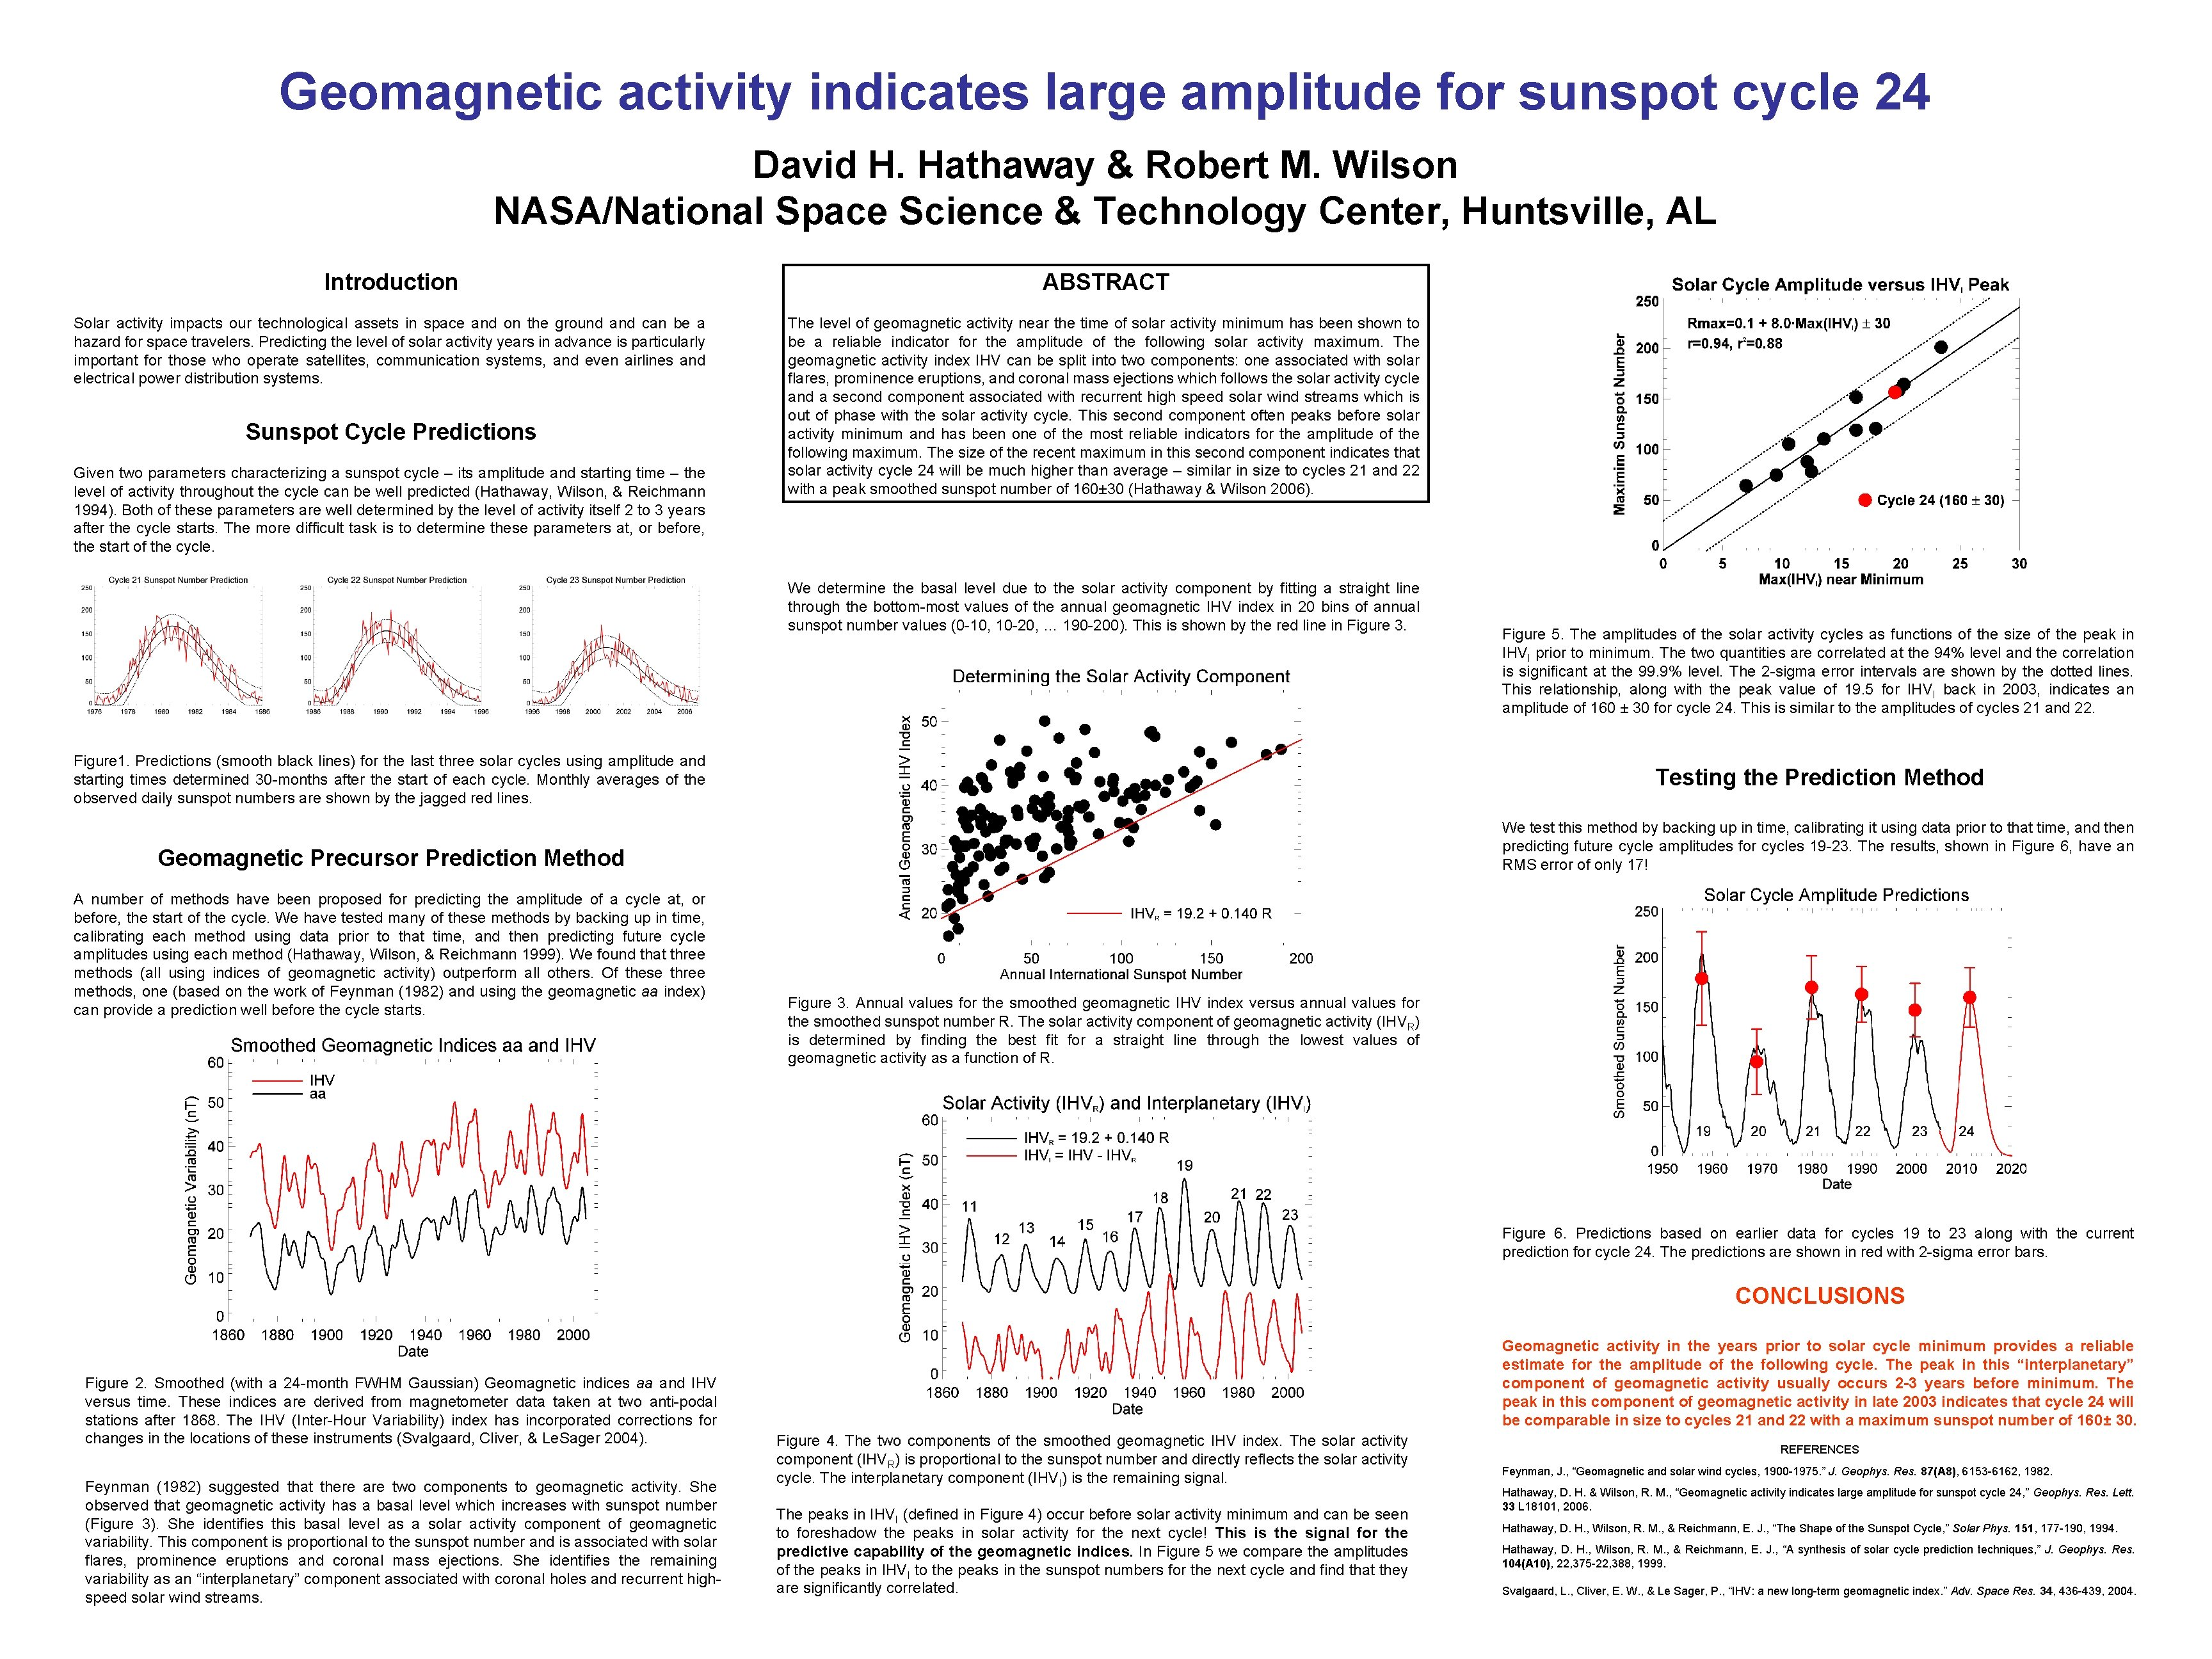 Geomagnetic activity indicates large amplitude for sunspot cycle 24 David H. Hathaway & Robert